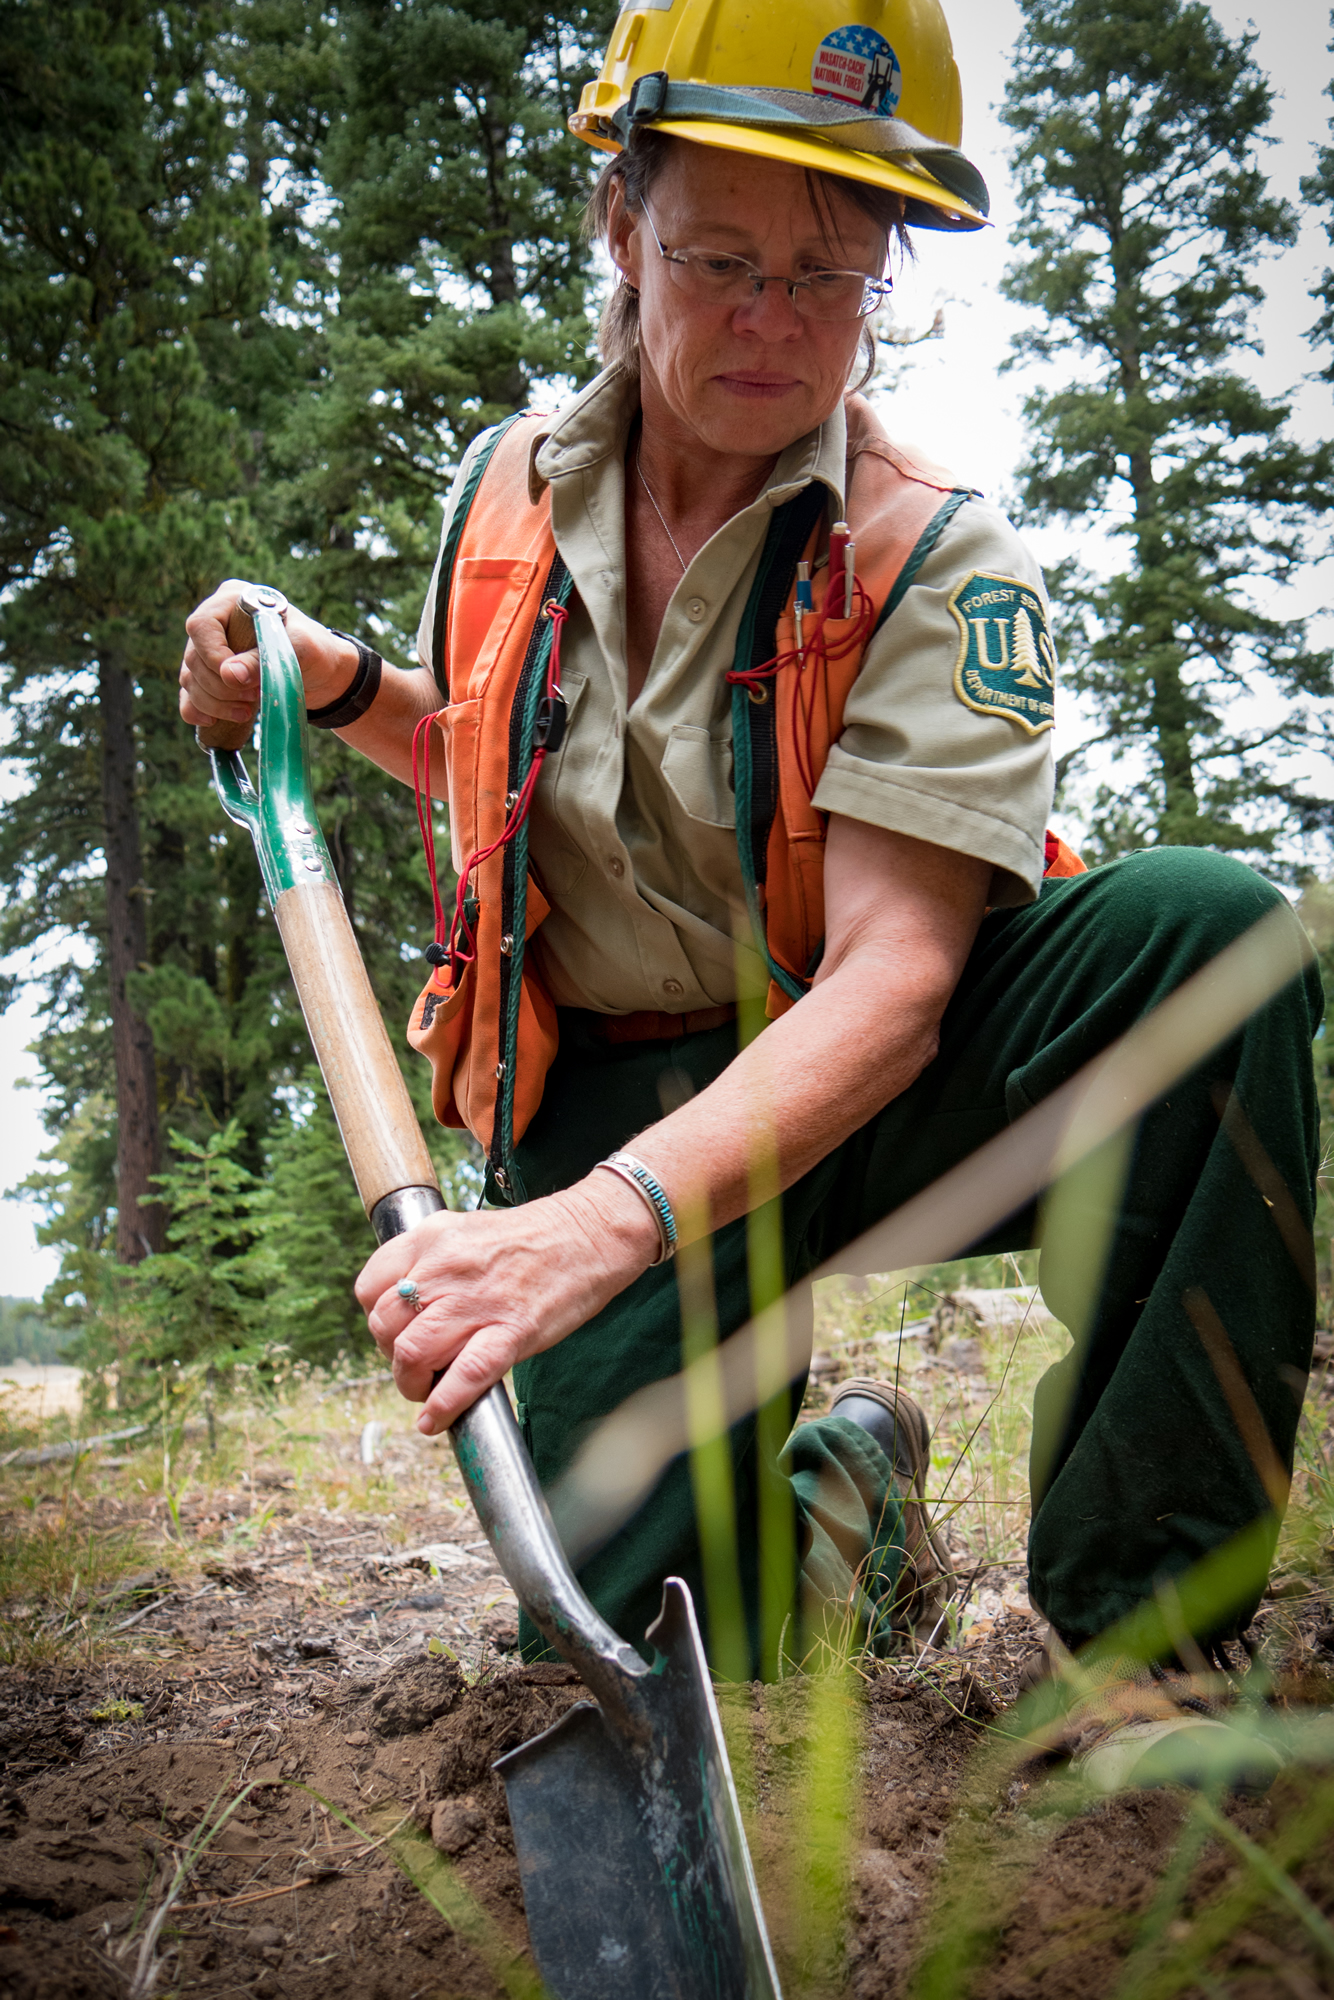 A picture of a Forest Service Ranger working in the field, using a shovel to make a small hole in the dirt.